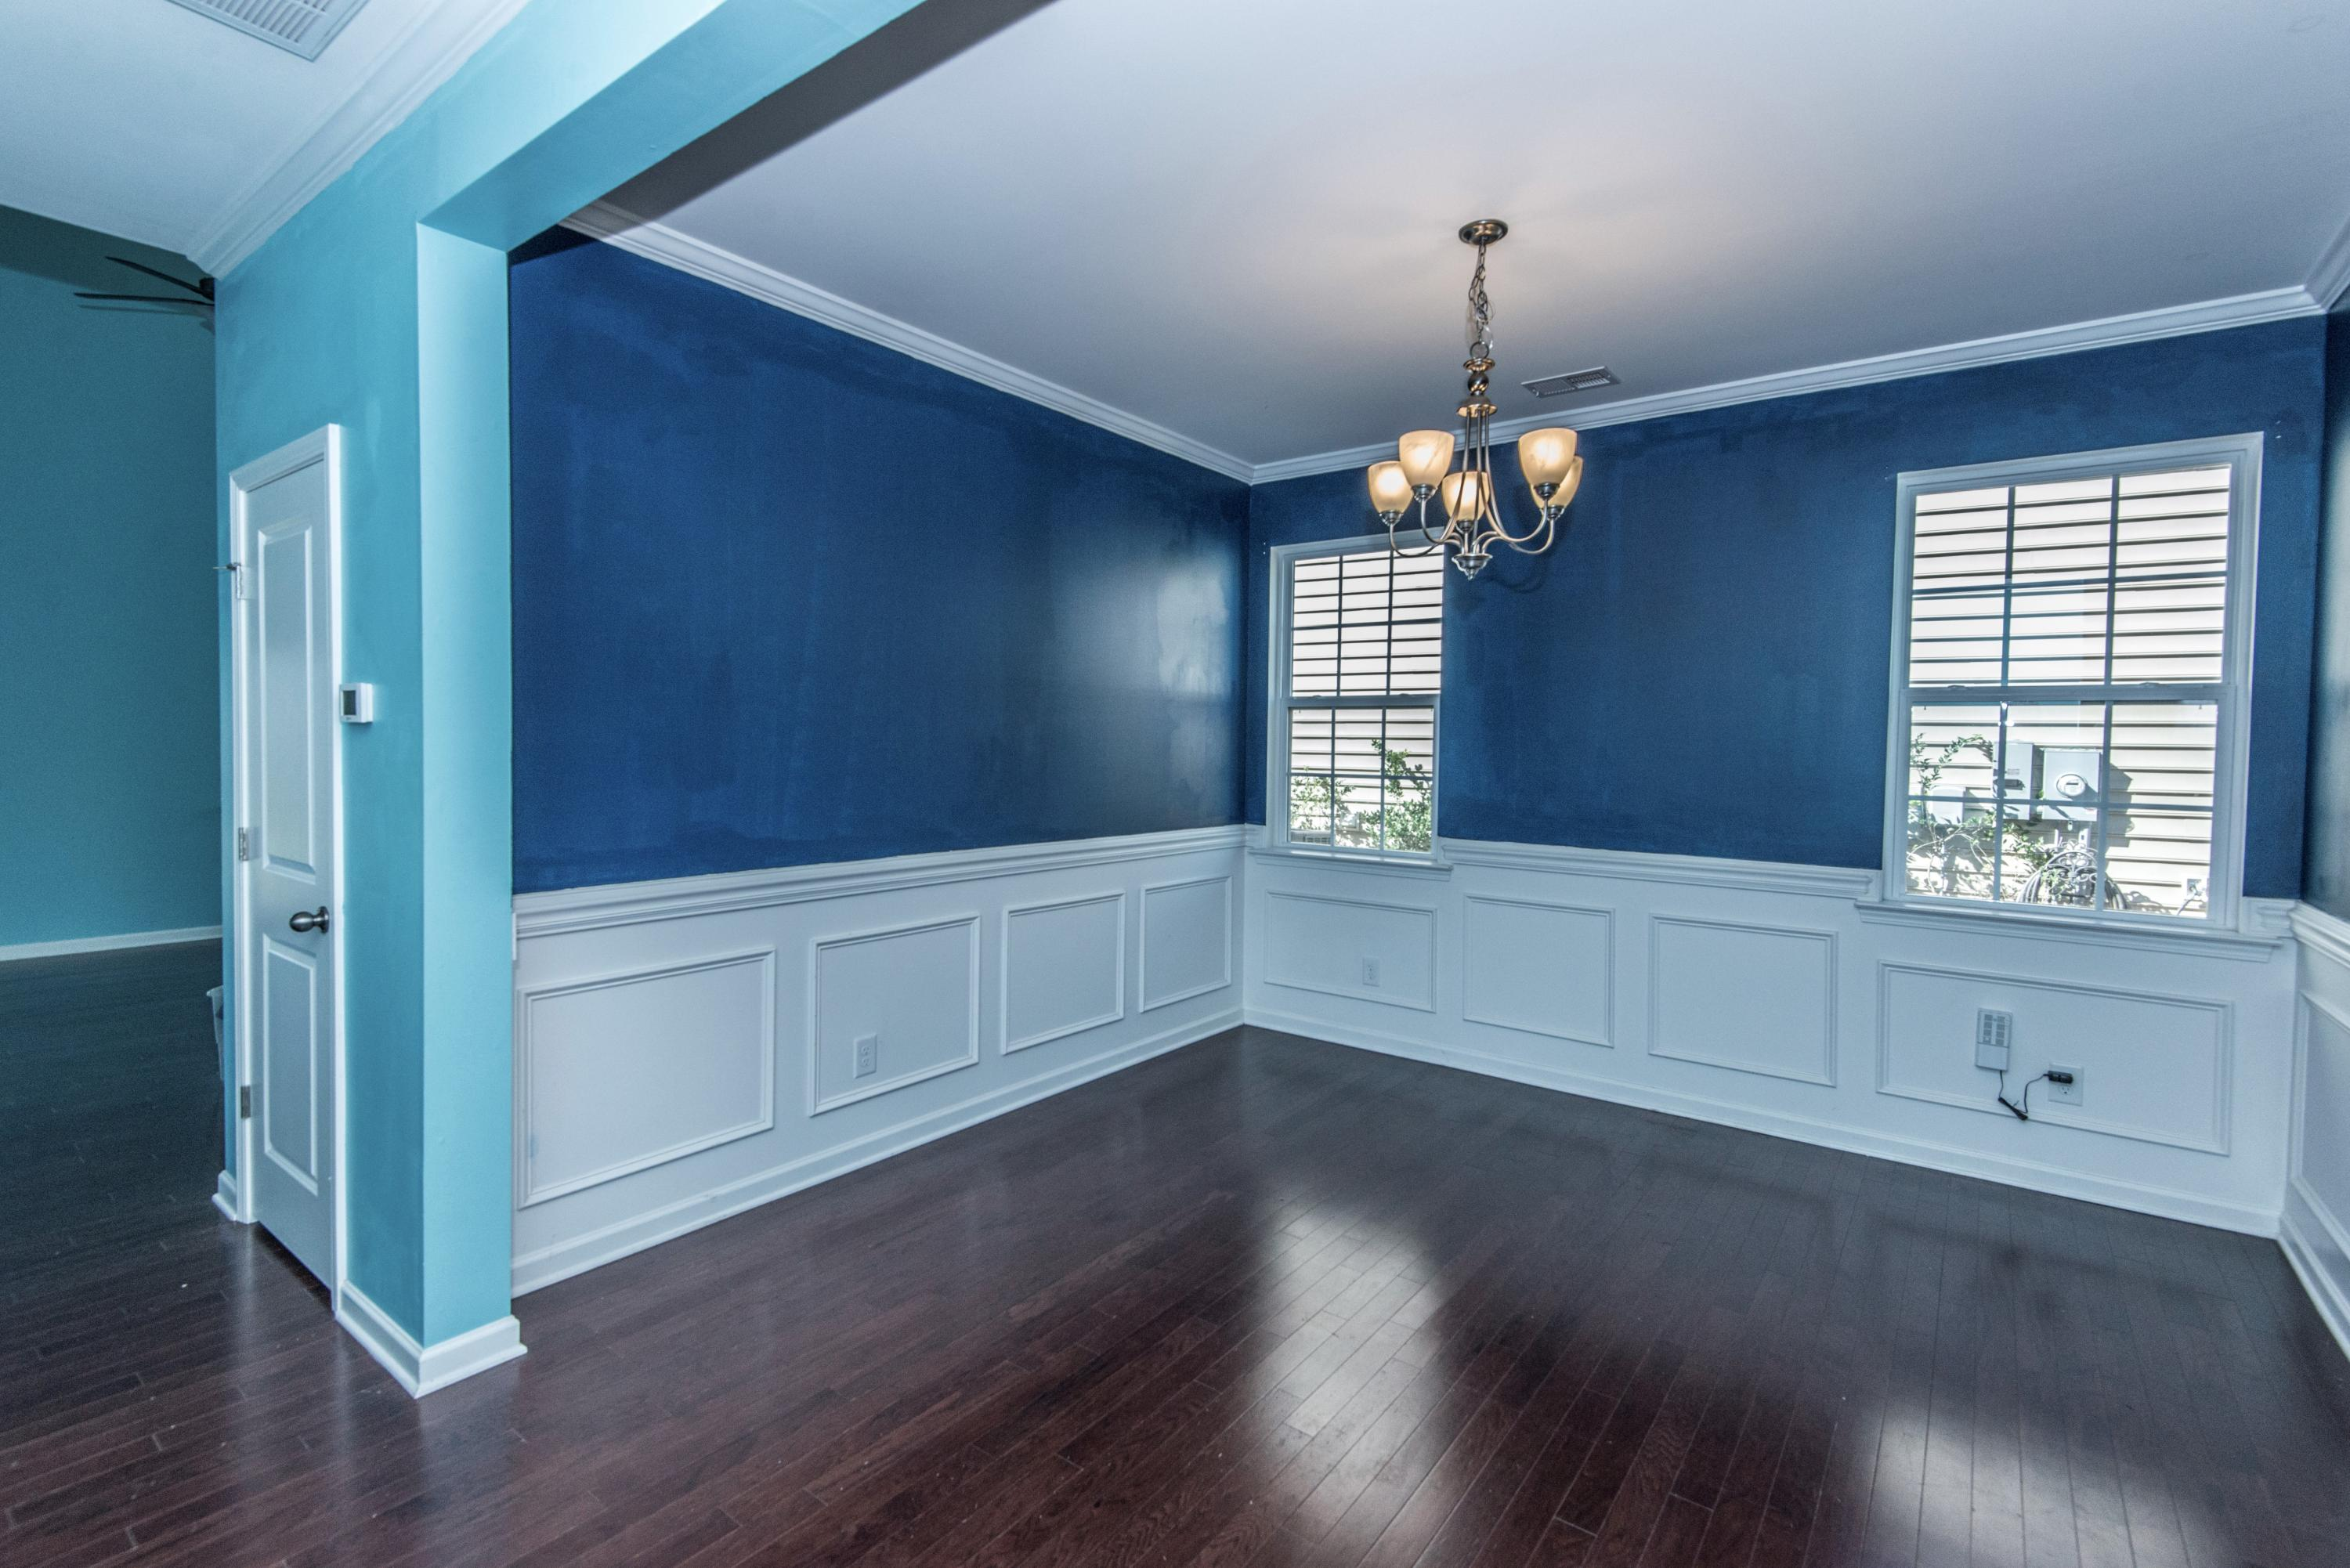 Wentworth Hall Homes For Sale - 216 Wexford, Summerville, SC - 8